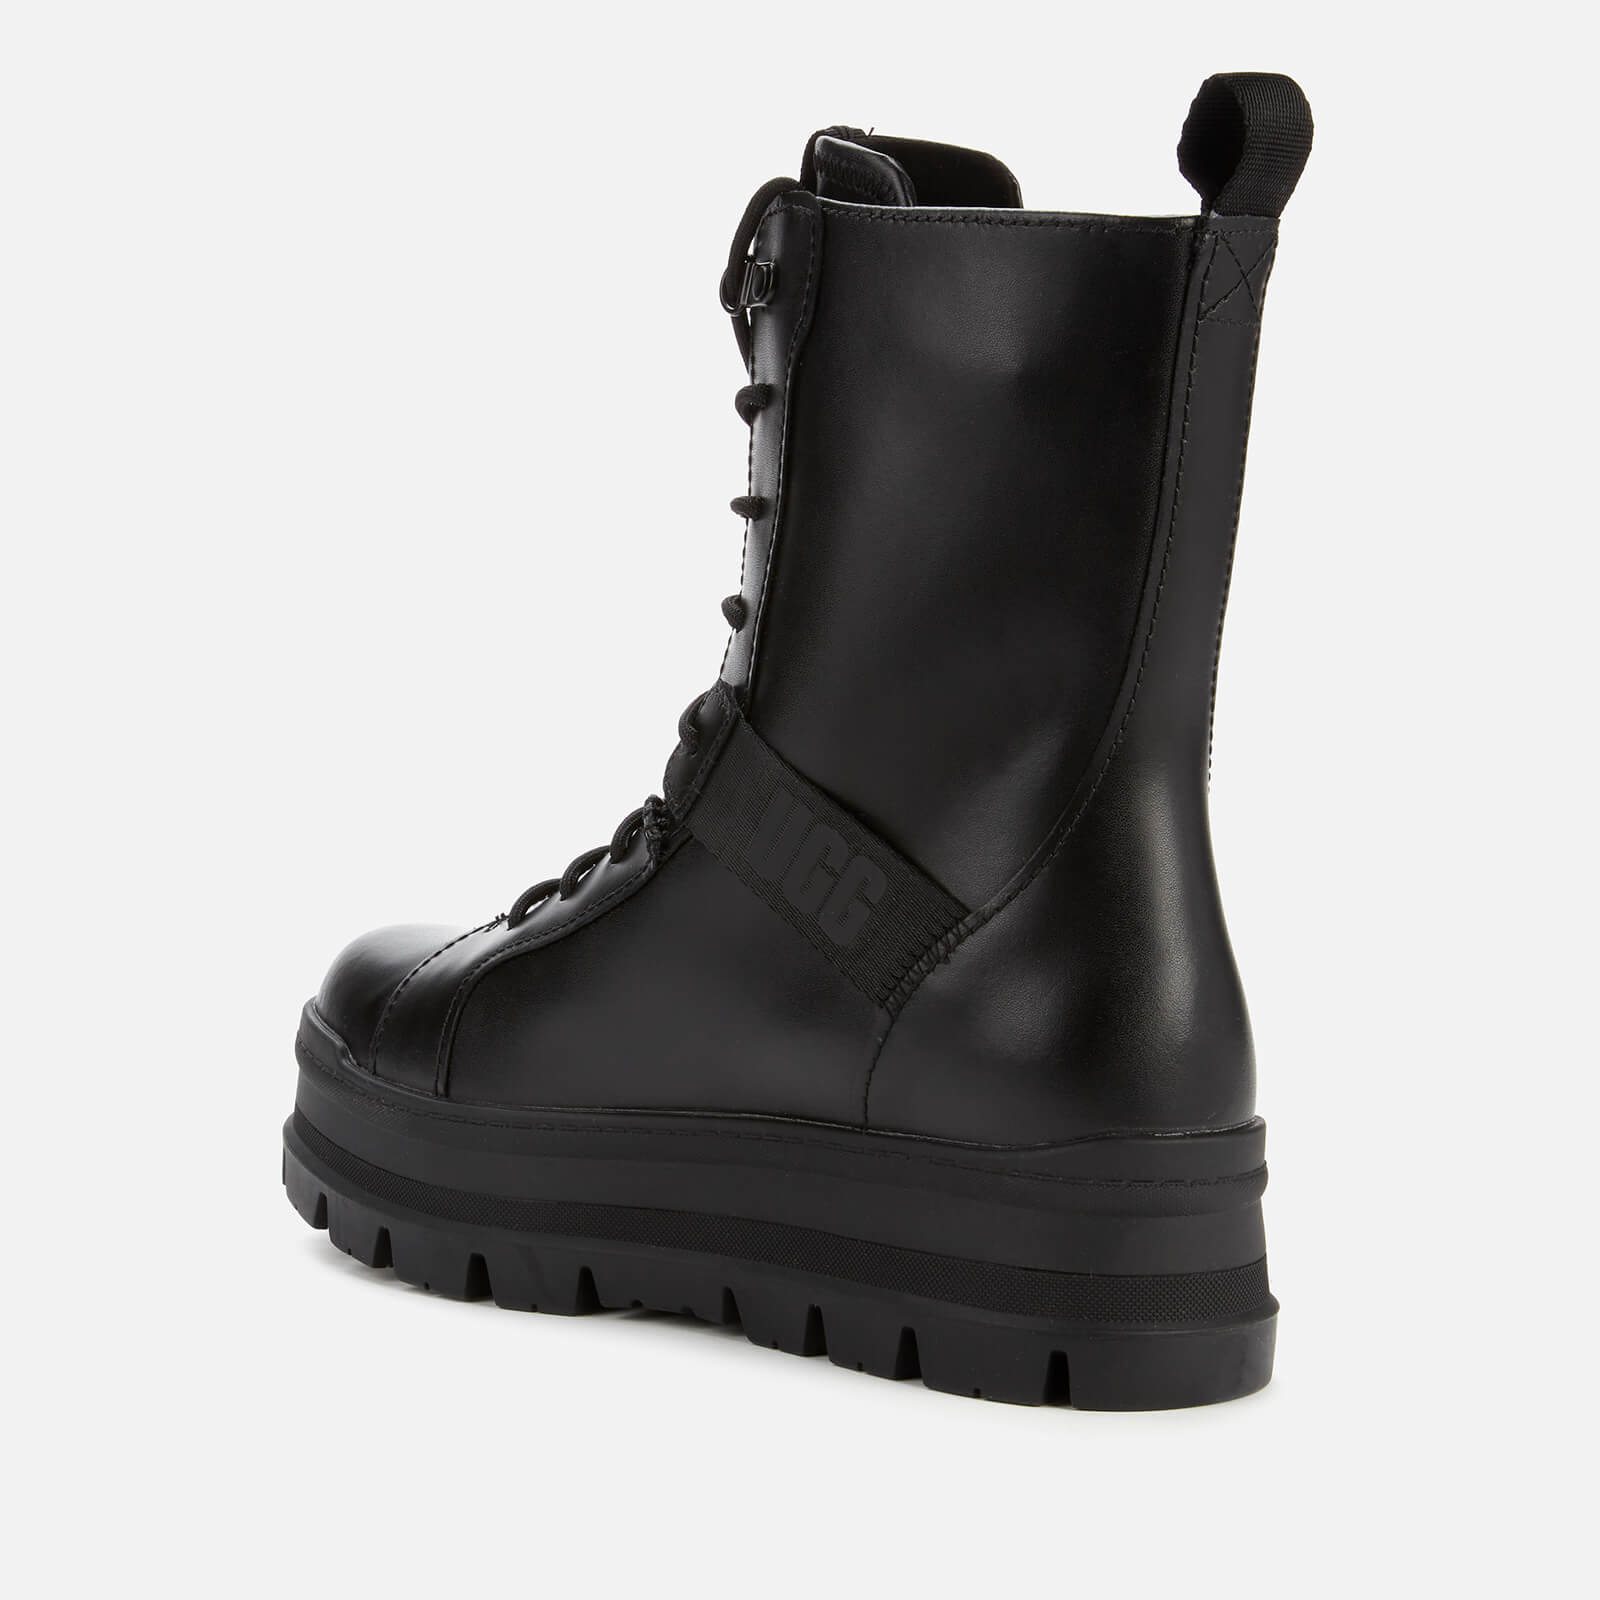 Ugg Women's Sheena Water Resistant Leather Lace Up Boots - Black - Uk 5